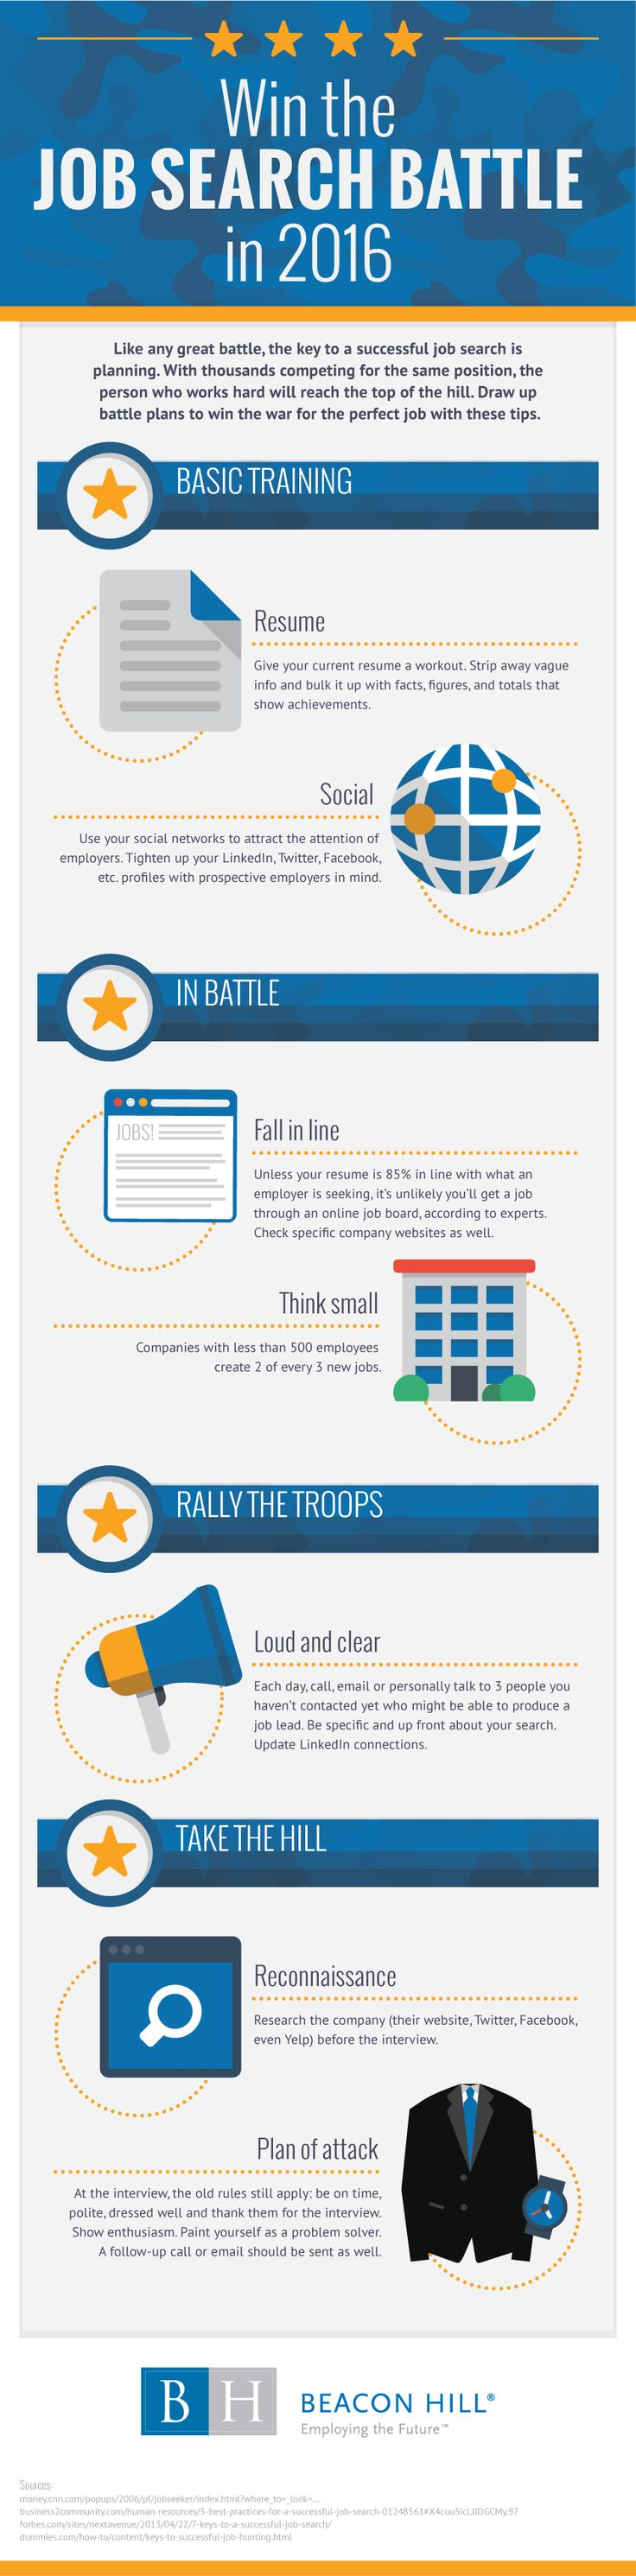 17 best images about job search personal branding job search battle infographic by beacon hill staffing